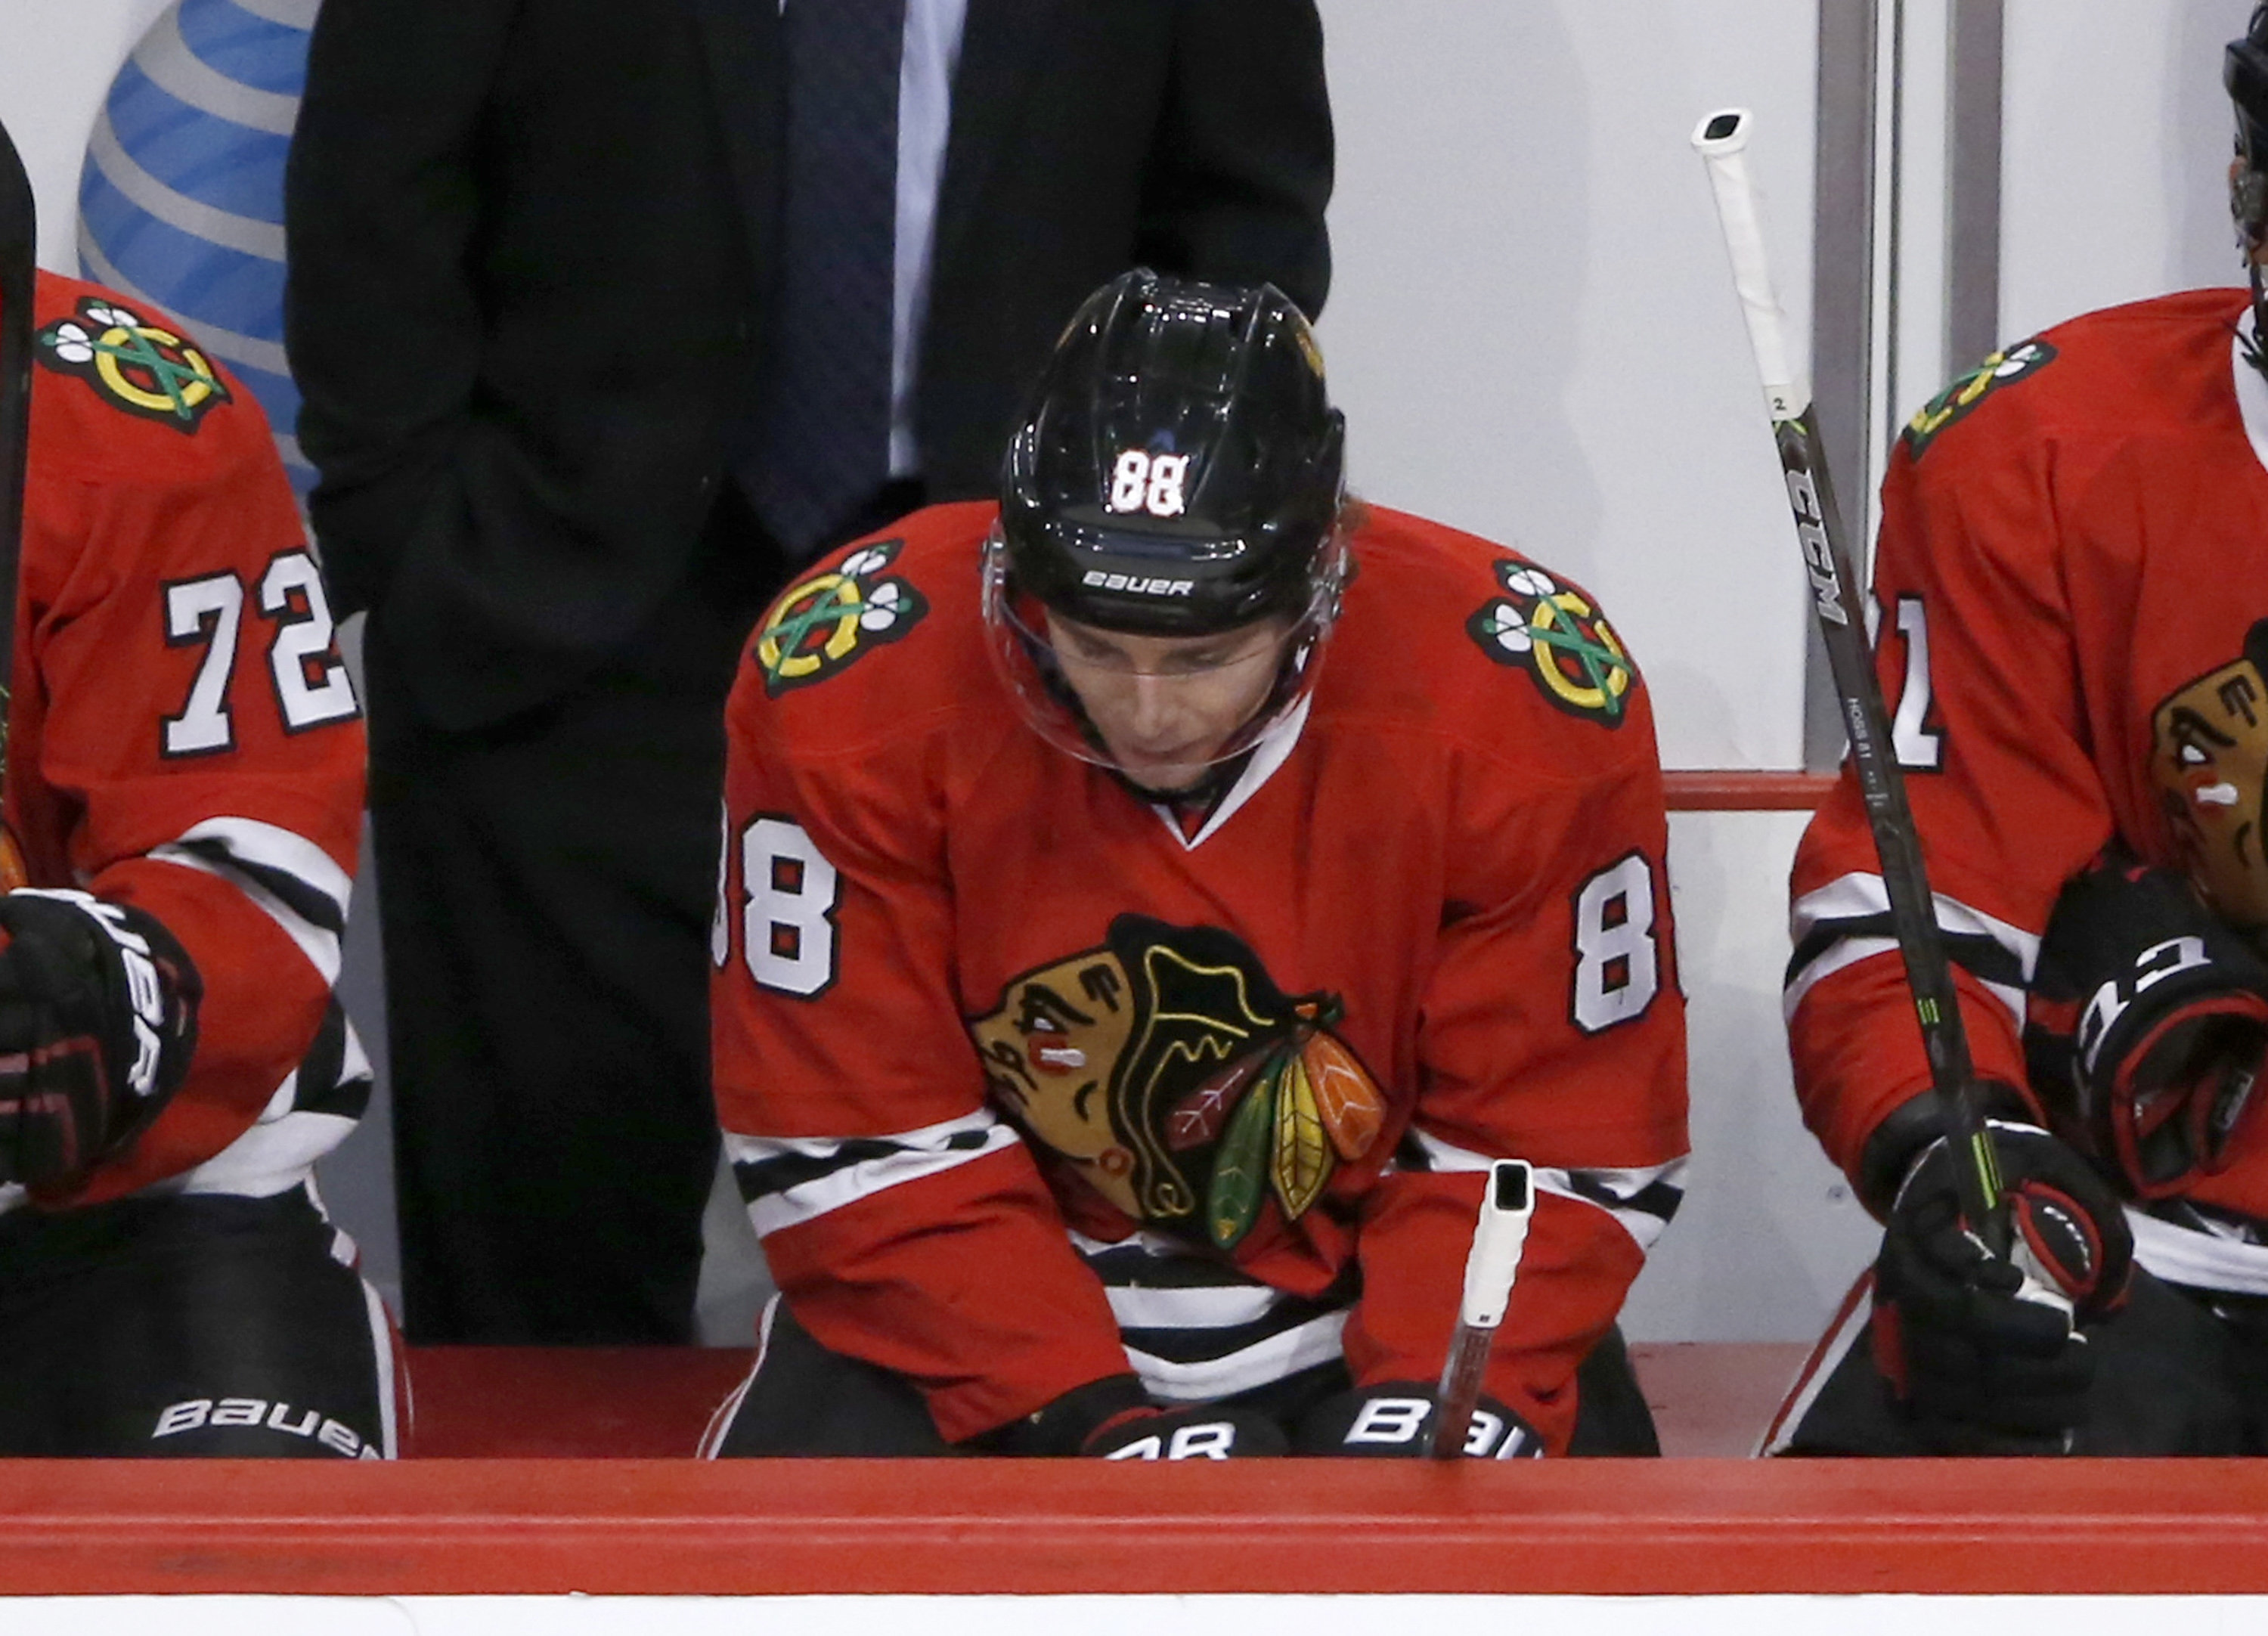 Chicago Blackhawks right wing Patrick Kane looks down on the bench during the closing minutes of the third period of an NHL hockey game against the Colorado Avalanche Tuesday, Dec. 15, 2015, in Chicago. The Avalanche won 3-0. Kane's consecutive points str